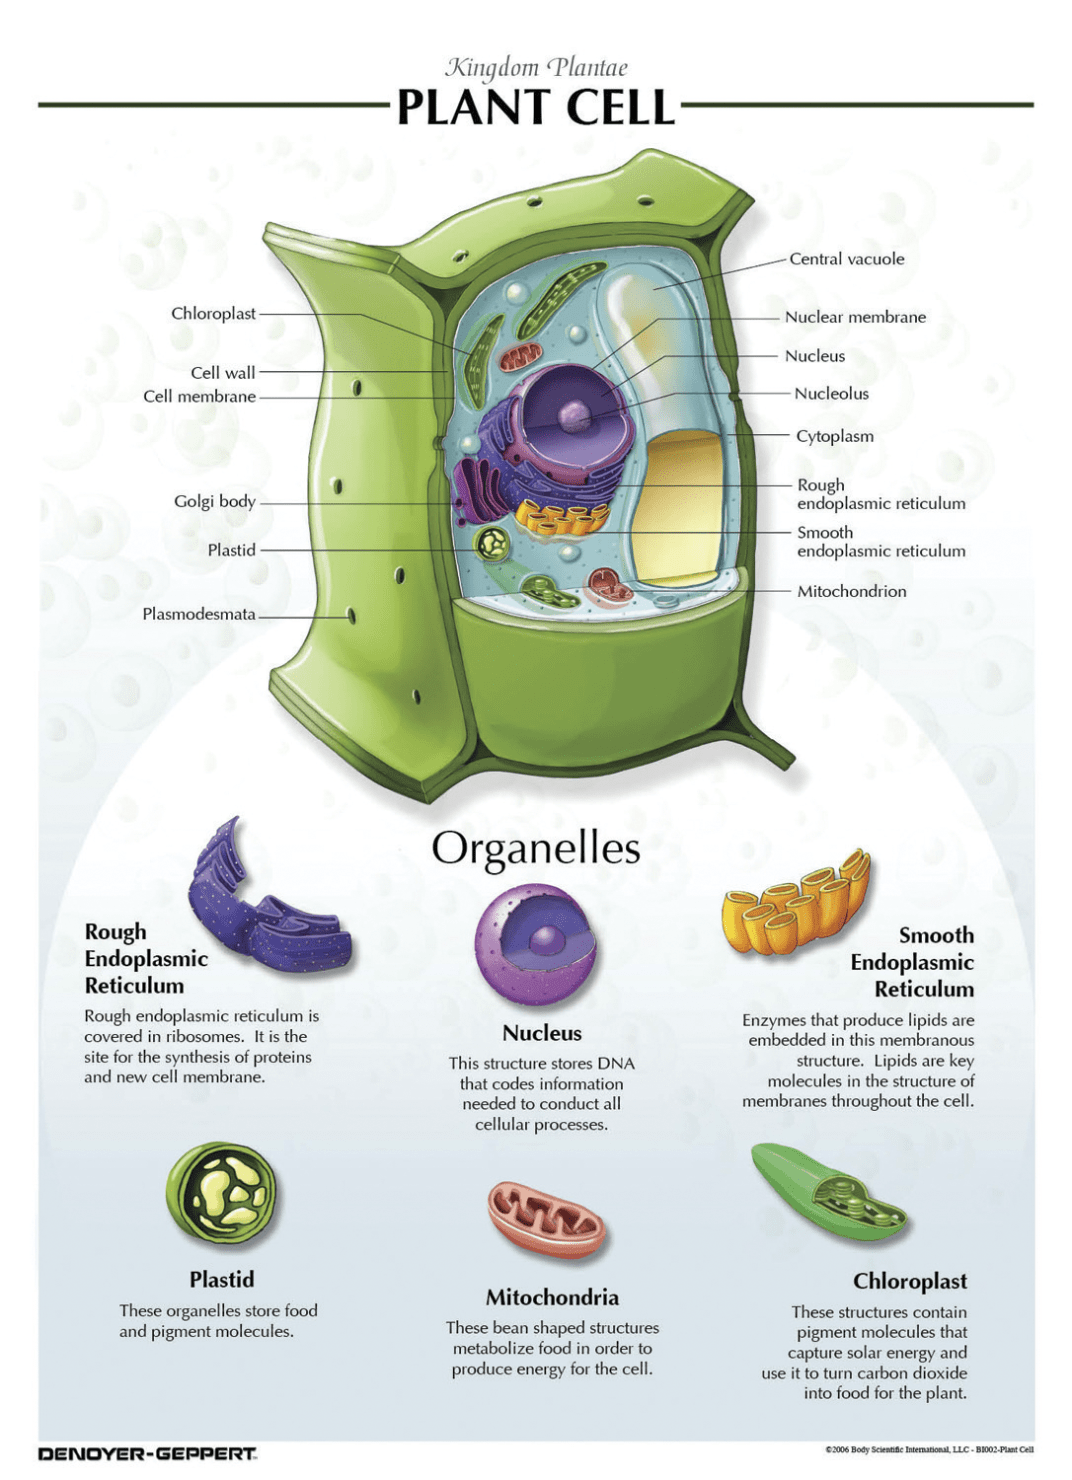 Denoyer Geppert Plant Cell Chart